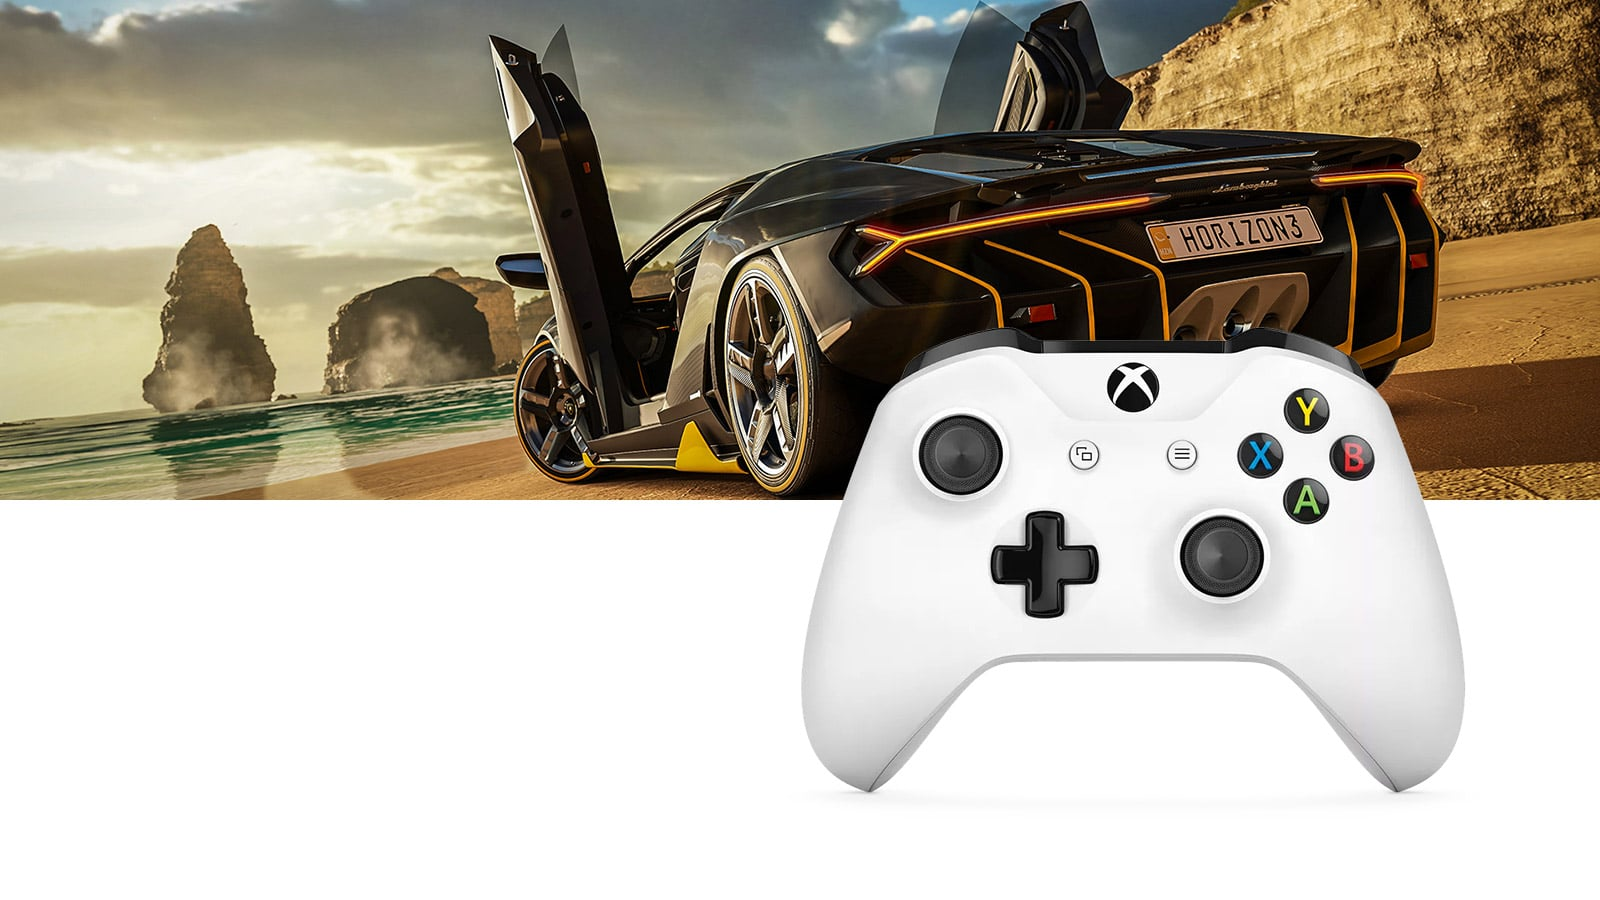 Xbox One S controller, as seen from the front with a gameplay image from Forza Horizon 3 behind it